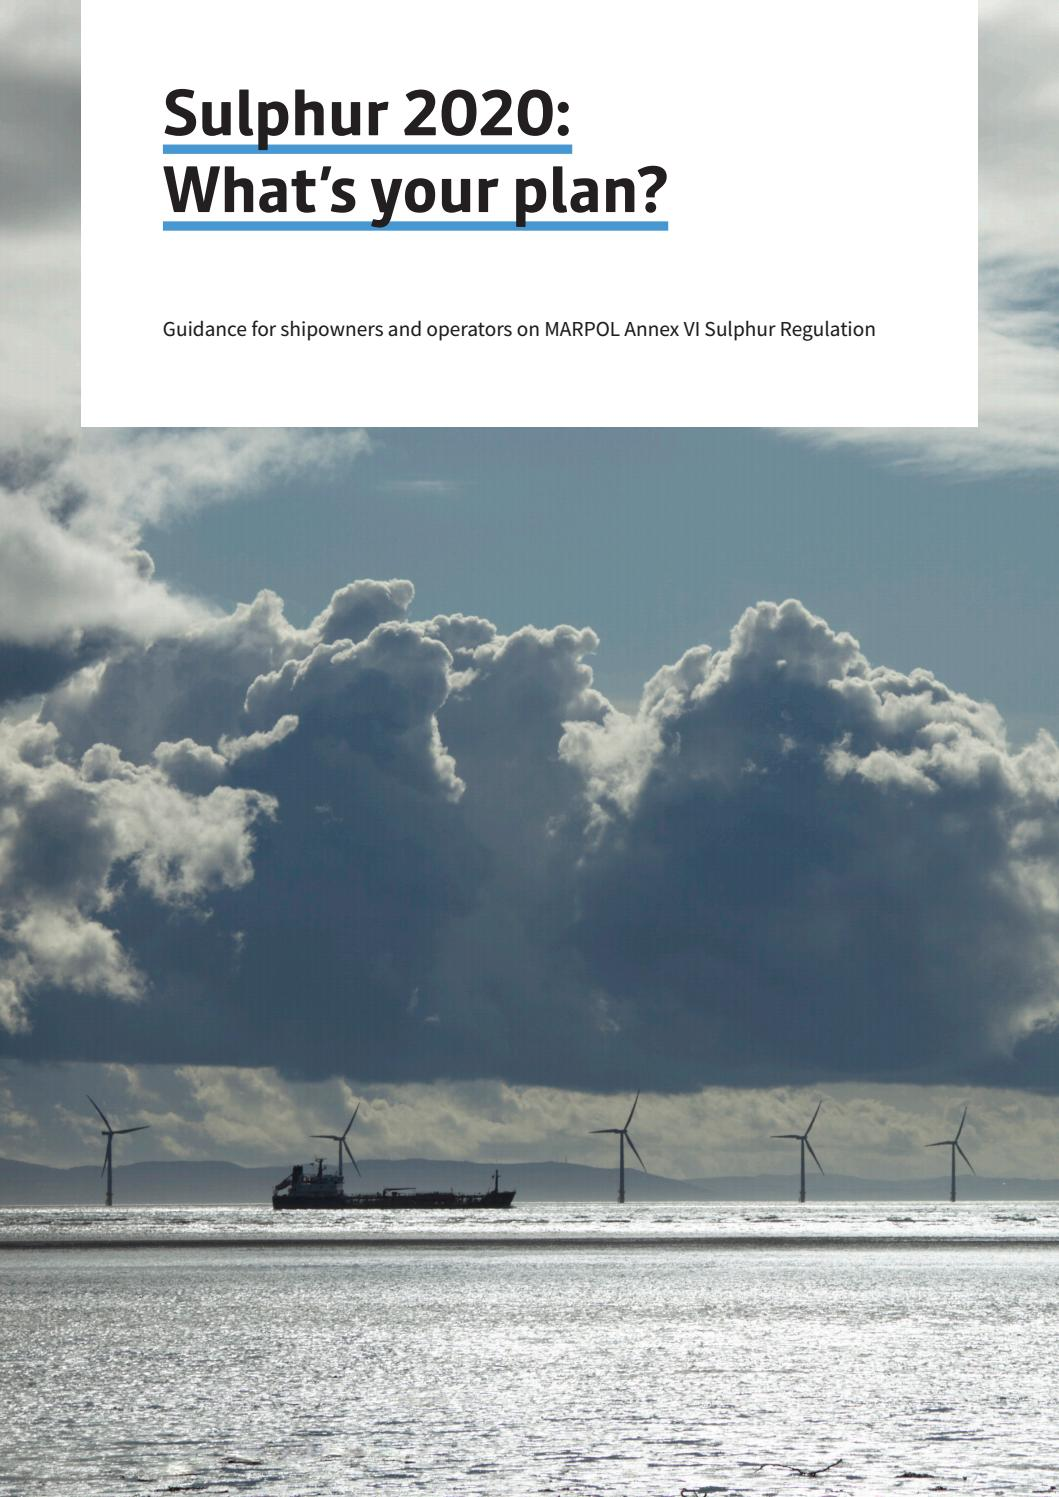 Sulphur 2020: what's your plan? Guidance document by lloyd's.